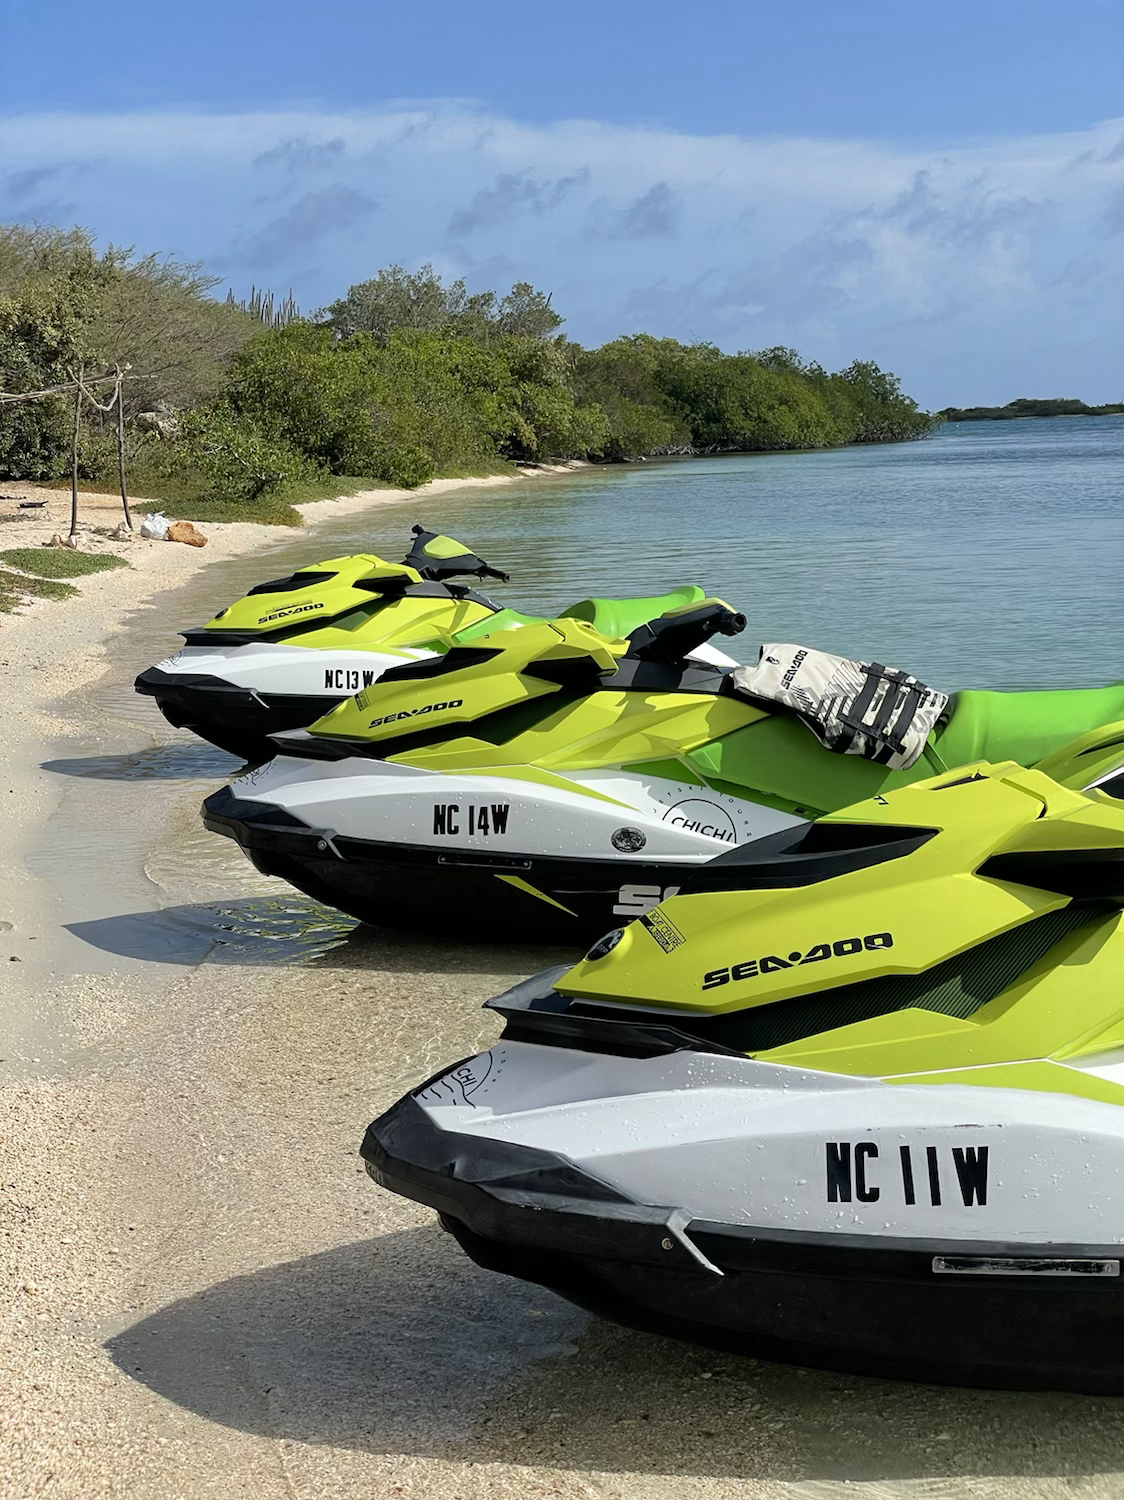 Chill Ride 3 Jetskis - 1P each - 1 hour